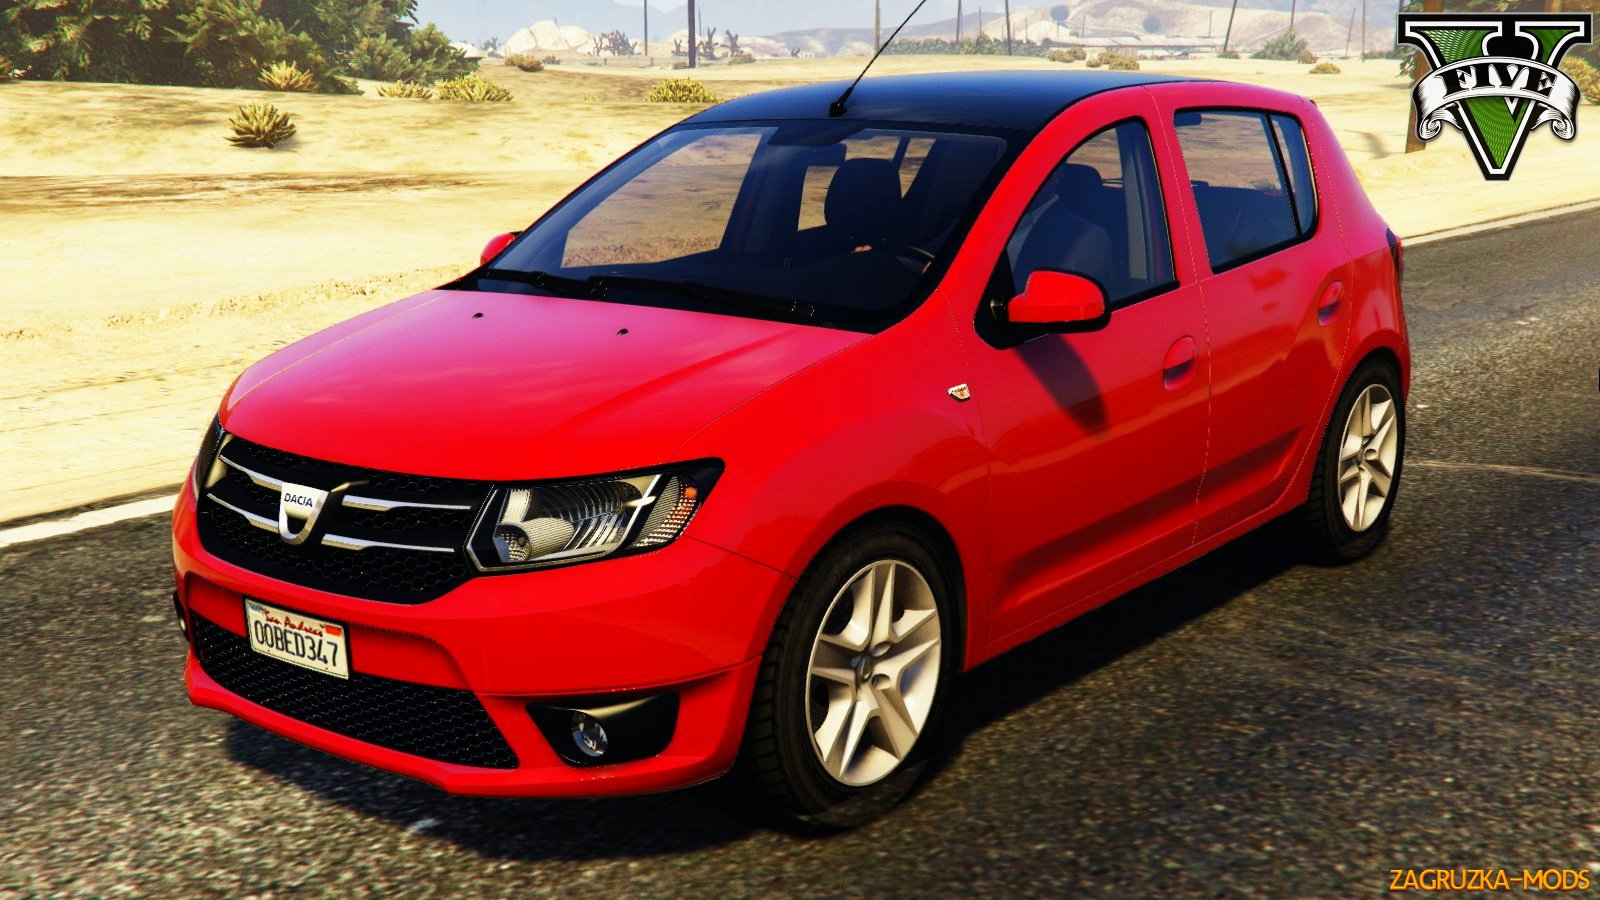 Dacia Sandero 2014 v1.0 for GTA 5